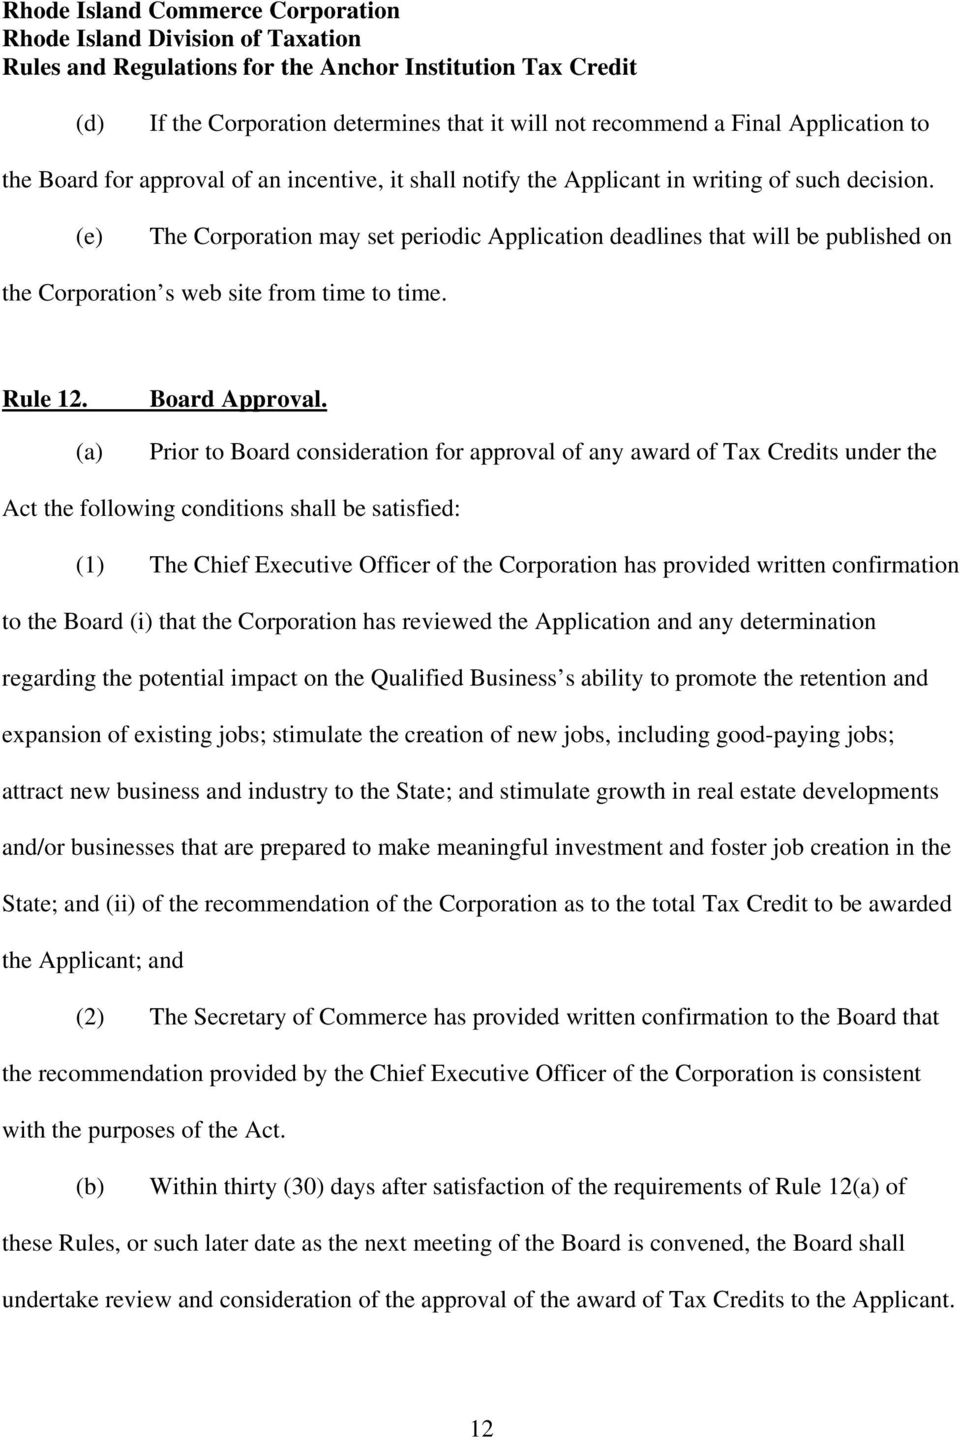 Prior to Board consideration for approval of any award of Tax Credits under the Act the following conditions shall be satisfied: (1) The Chief Executive Officer of the Corporation has provided